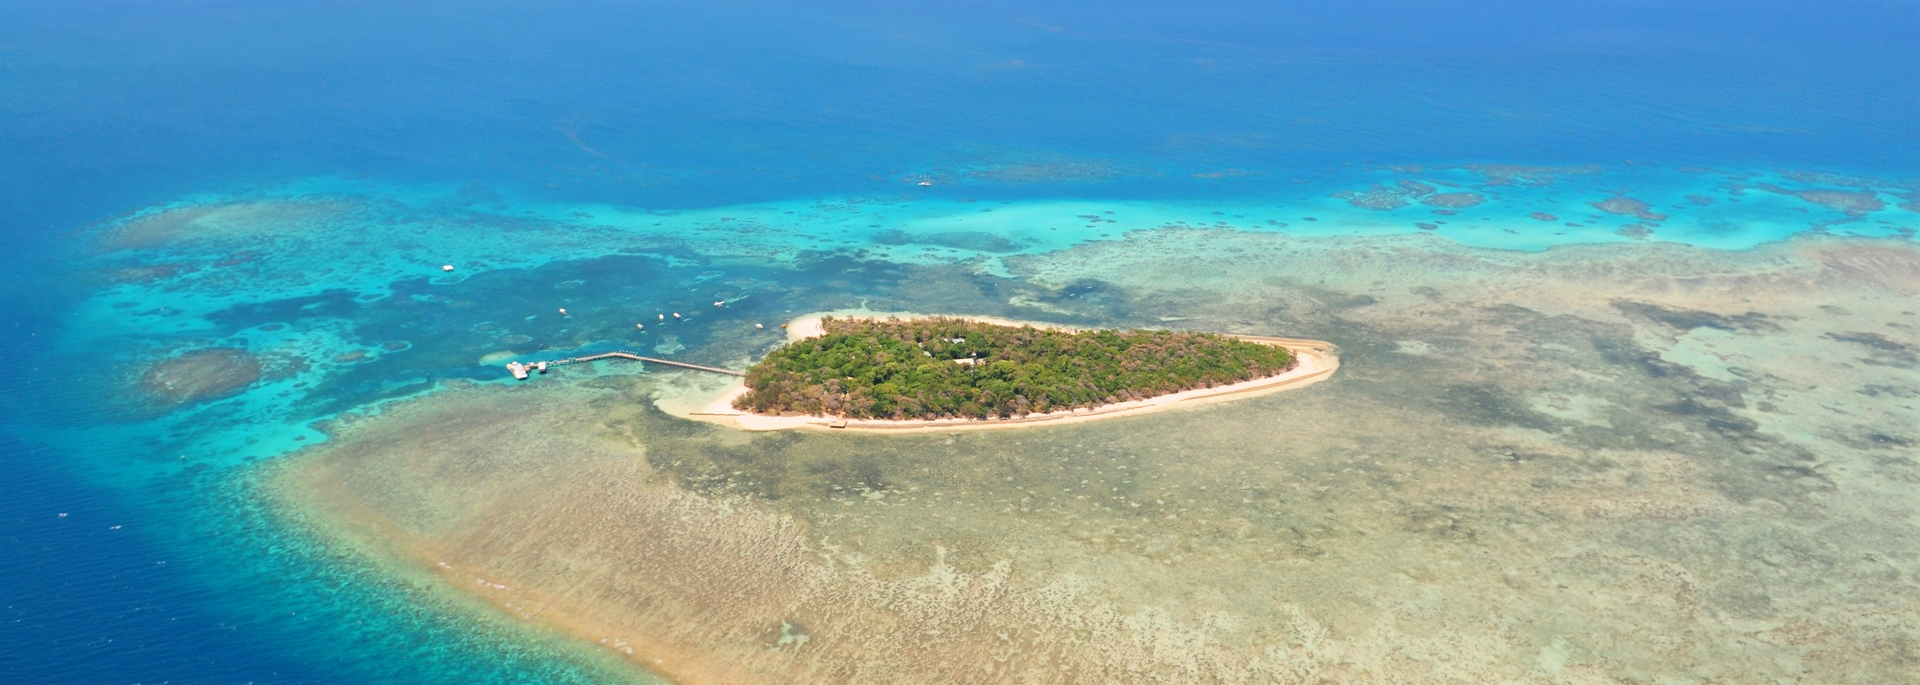 Small Island on Barrier Reef